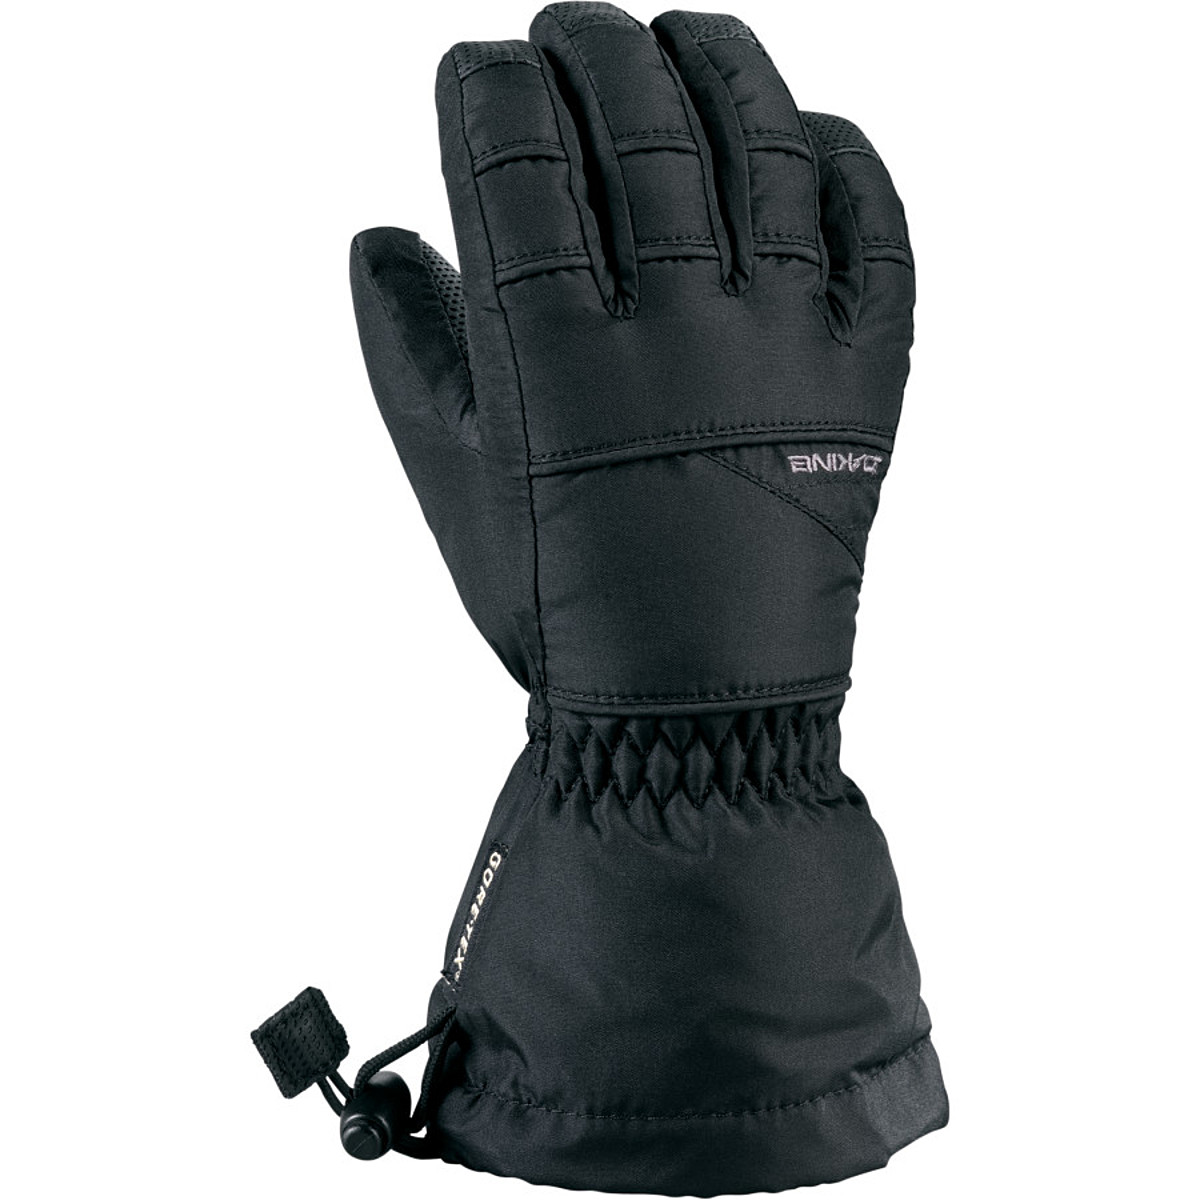 Insulated Glove/Mitten Reviews